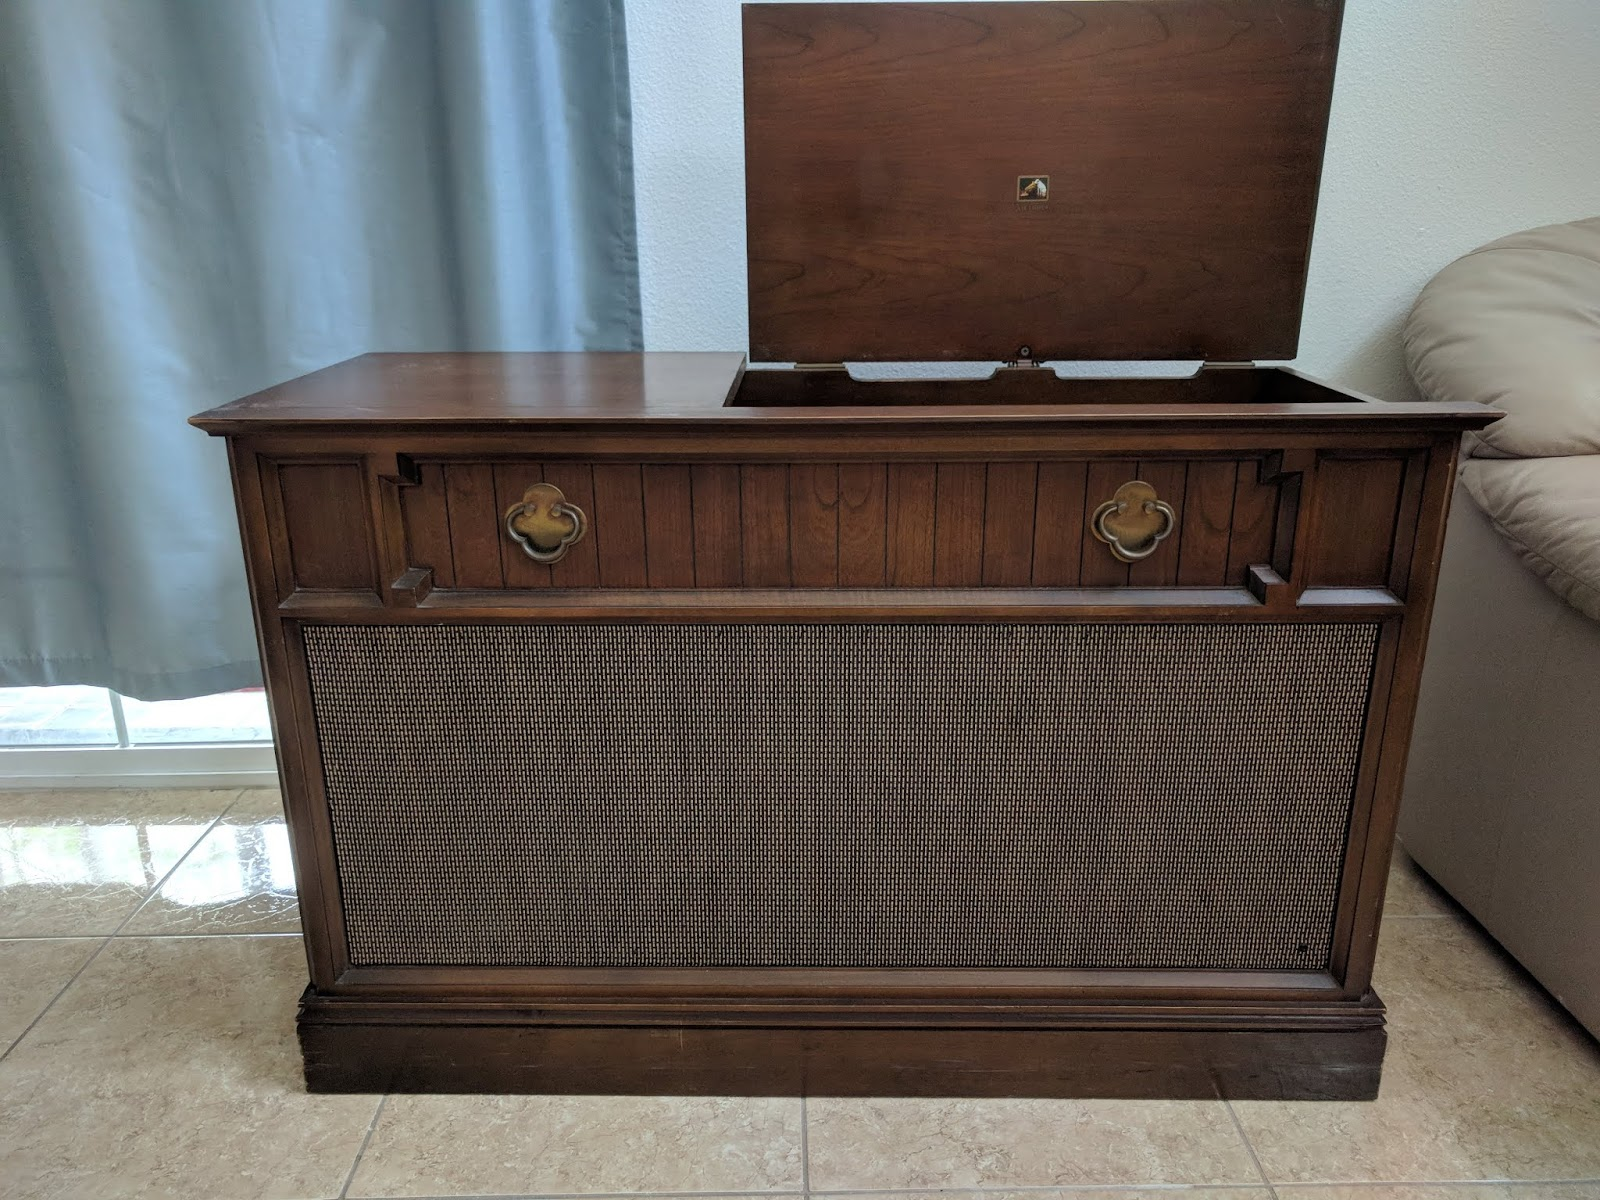 Musings and Hobbies: 1963/4 RCA Victor Stereo Console Model